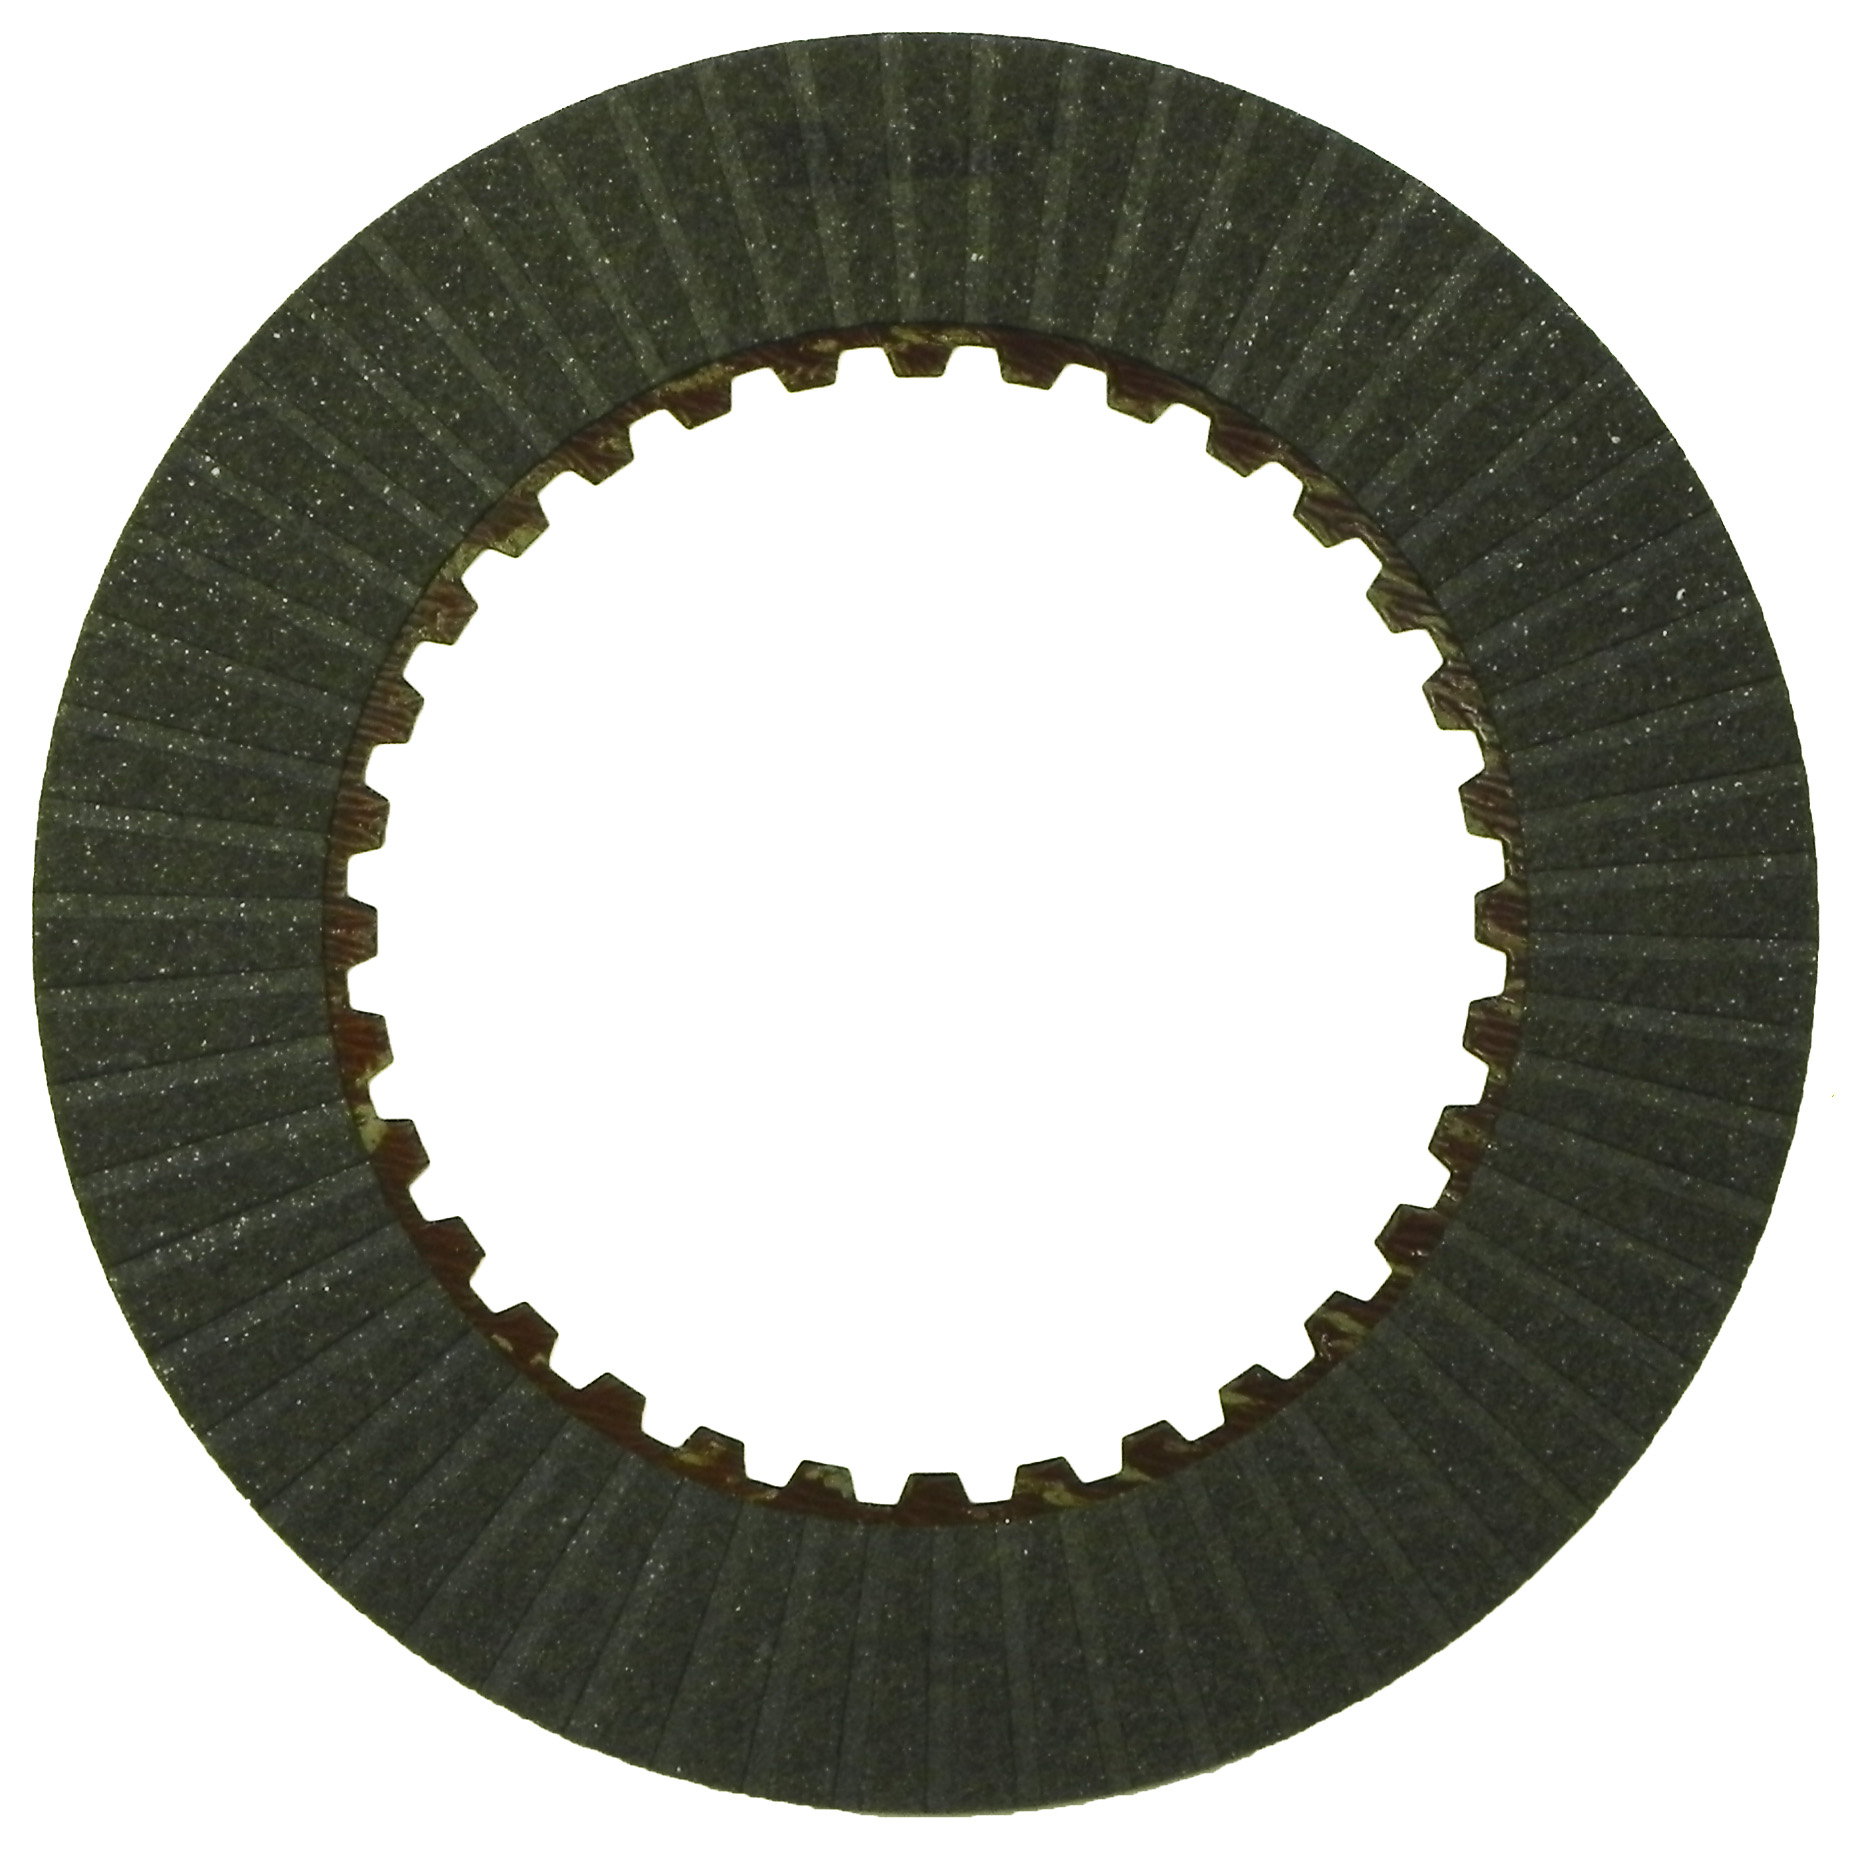 R559550 | 2002-ON Friction Clutch Plate High Energy 4th, Single Sided, ID Spline High Energy (Volvo Only)